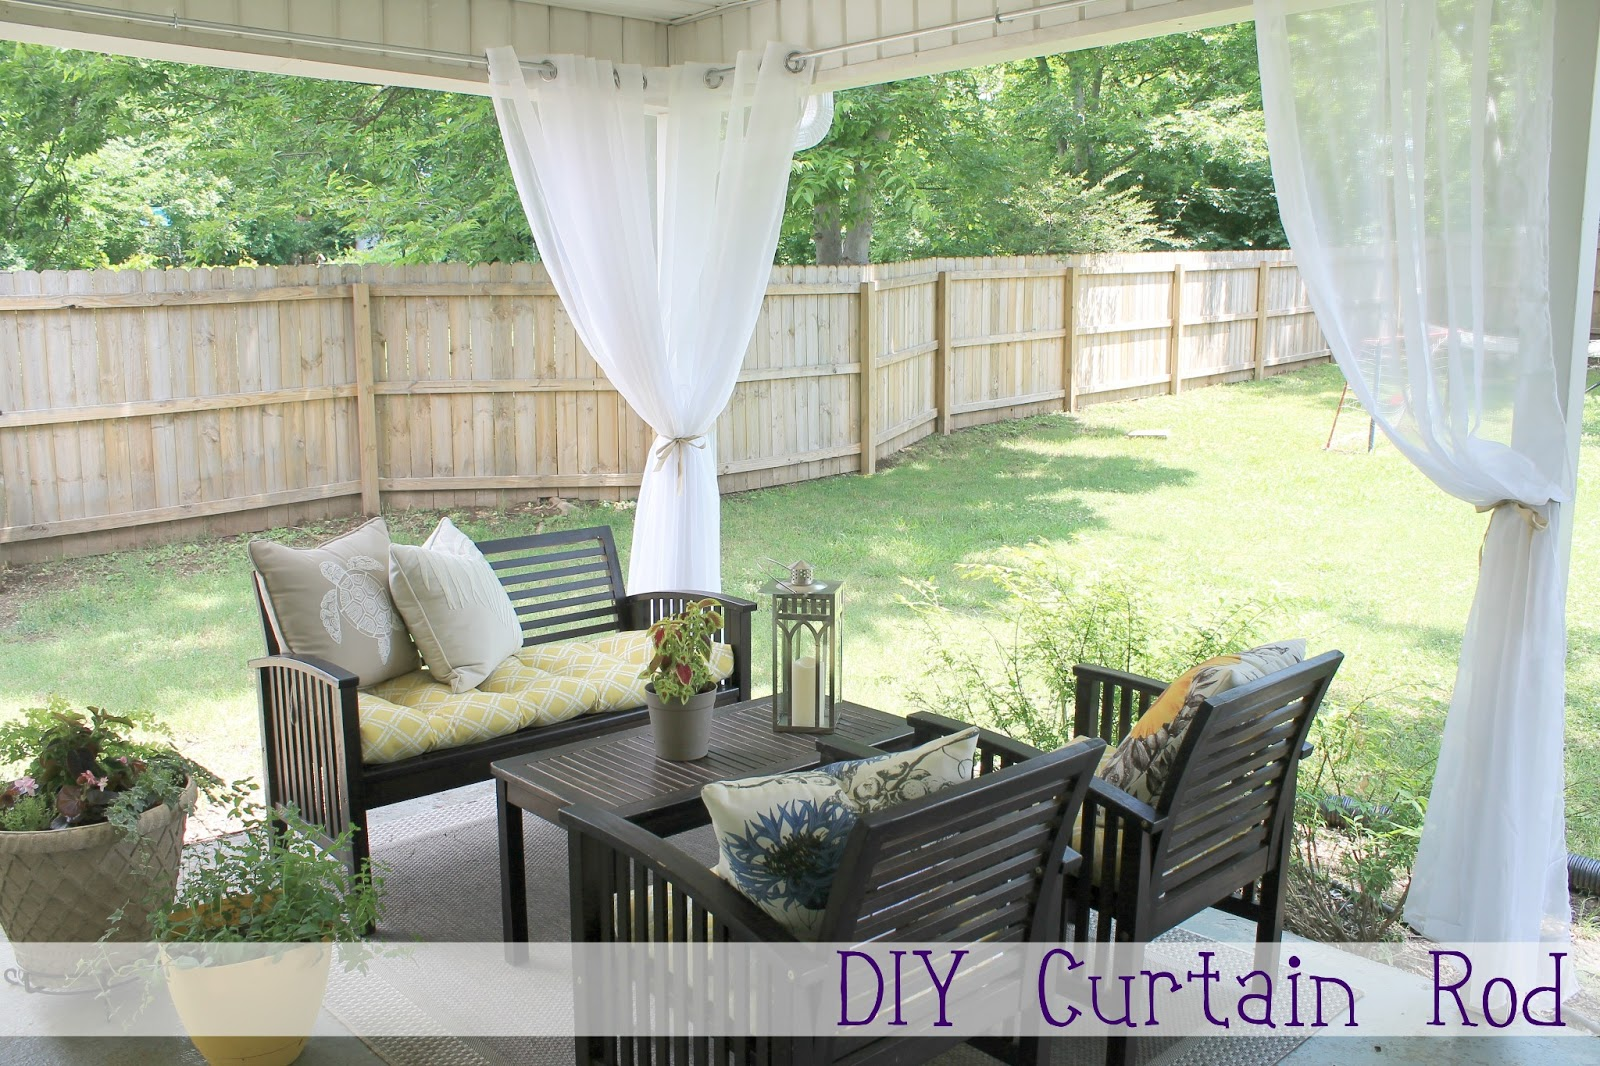 Curtain For Balcony: DIY Curtain Rod